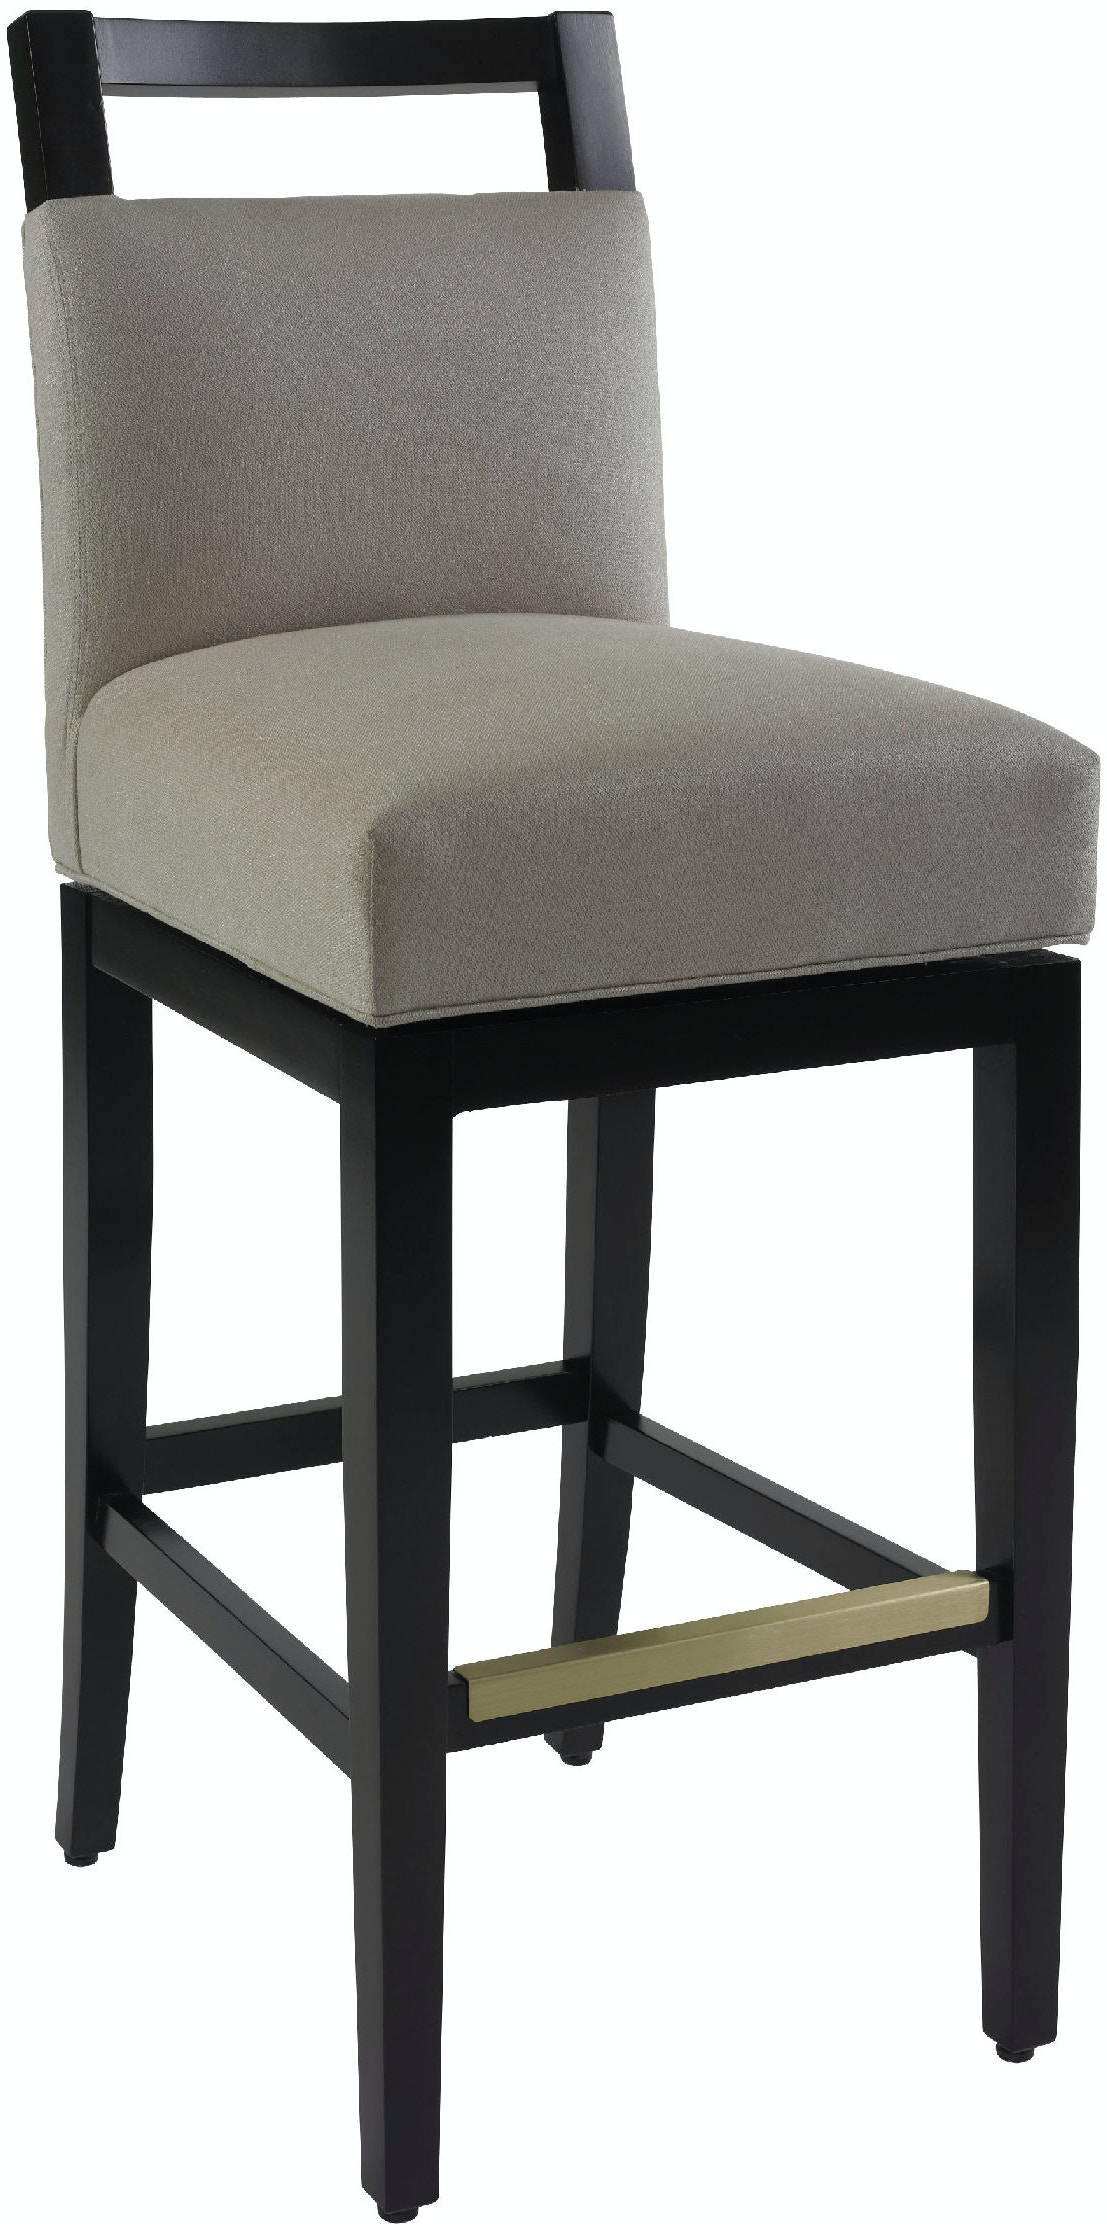 Designmaster Bar and Game Room Millington Bar Stool 03 612 30 : 03 612 30millington bar from www.goodshomefurnishings.com size 1024 x 768 jpeg 22kB